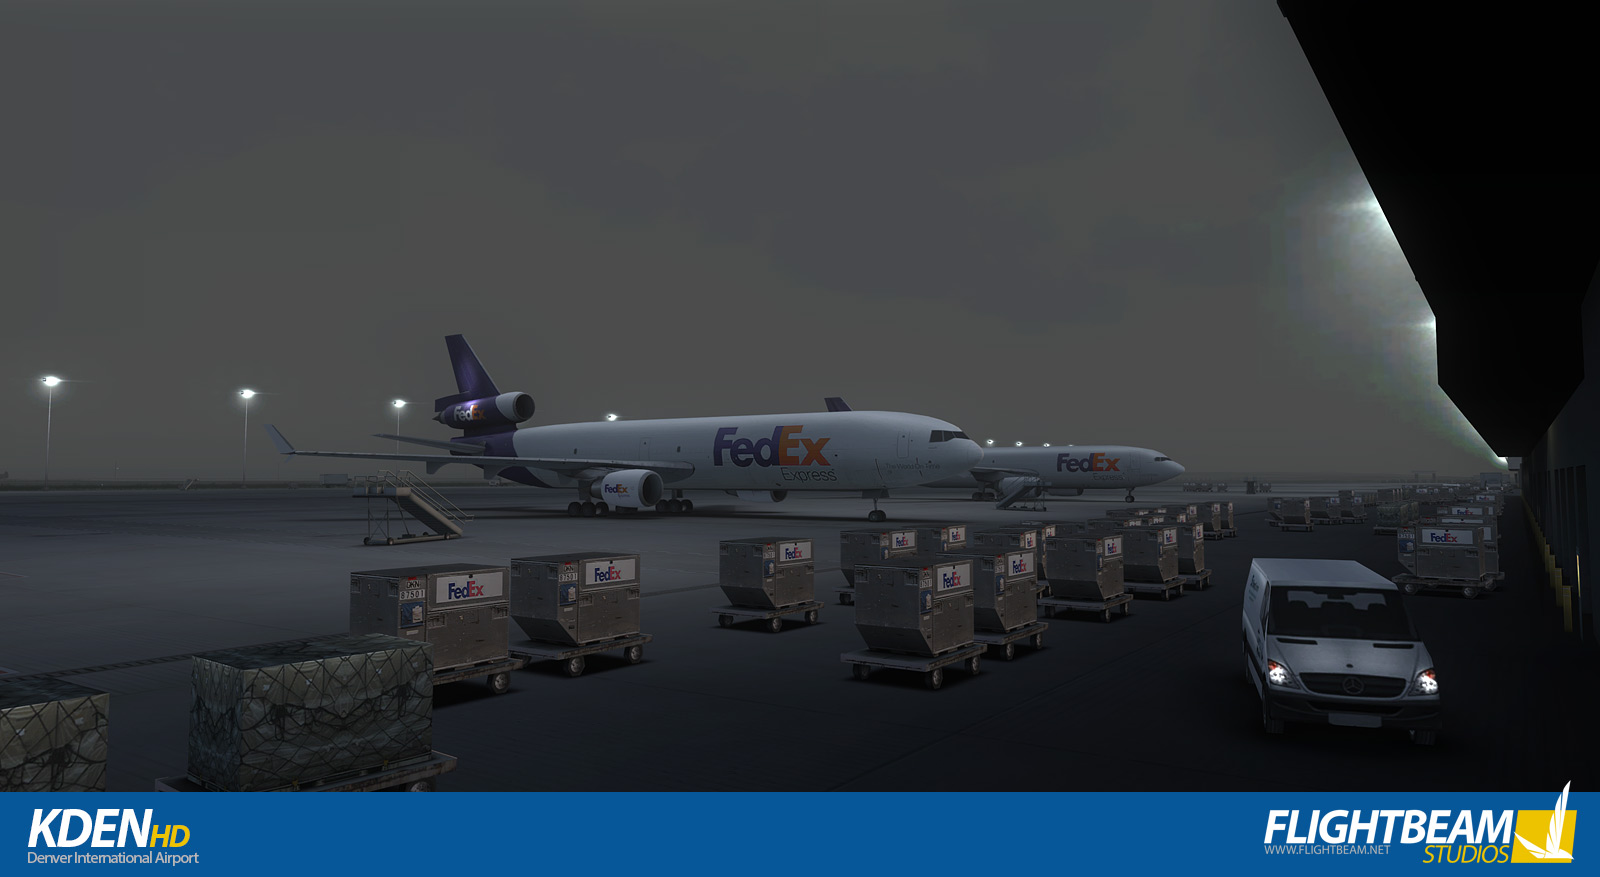 FLIGHTBEAM STUDIOS - KDEN - DENVER INTERNATIONAL AIRPORT FSX P3D